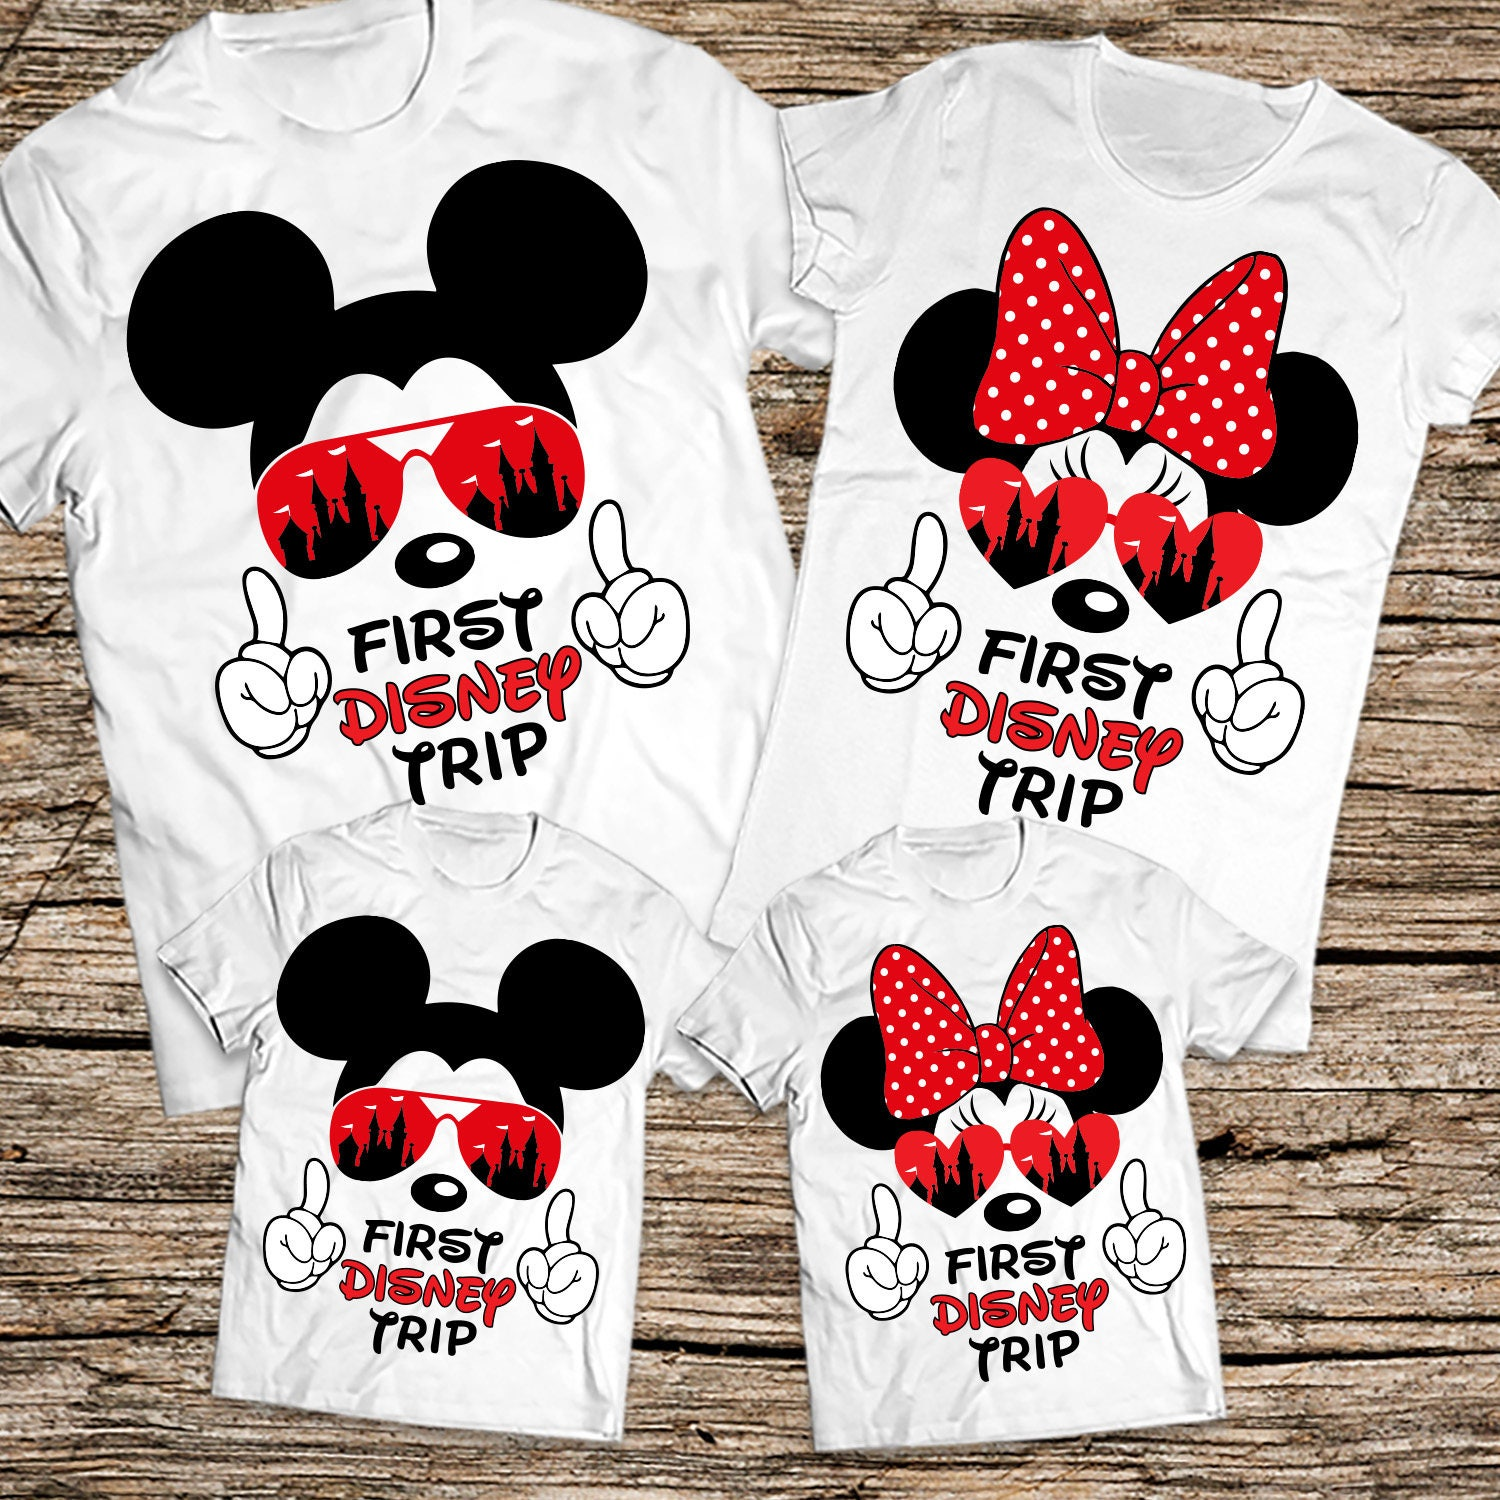 First Disney Trip family shirts Disney sunglasses family